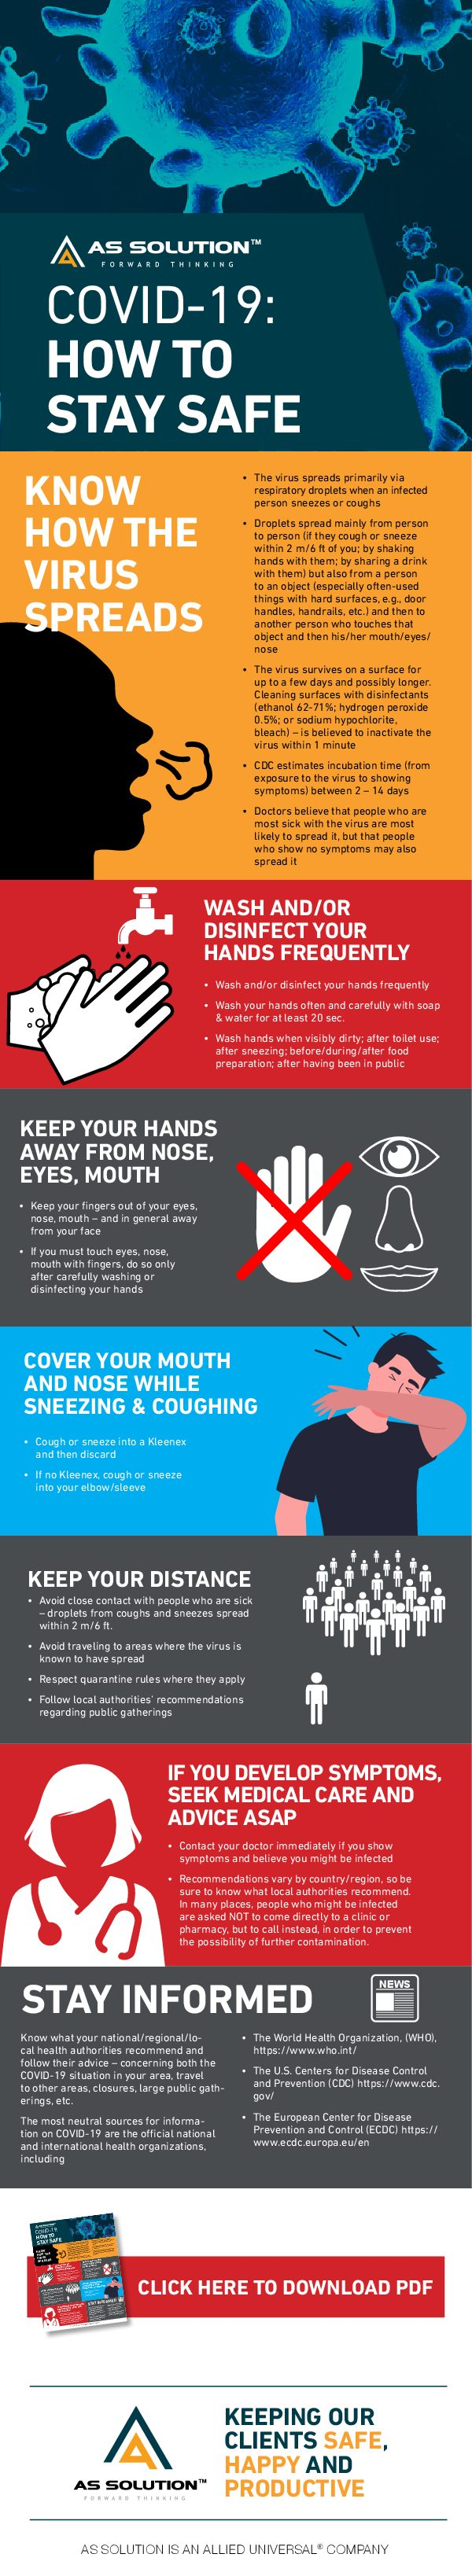 Staying safe in the COVID-19 outbreak #infographic